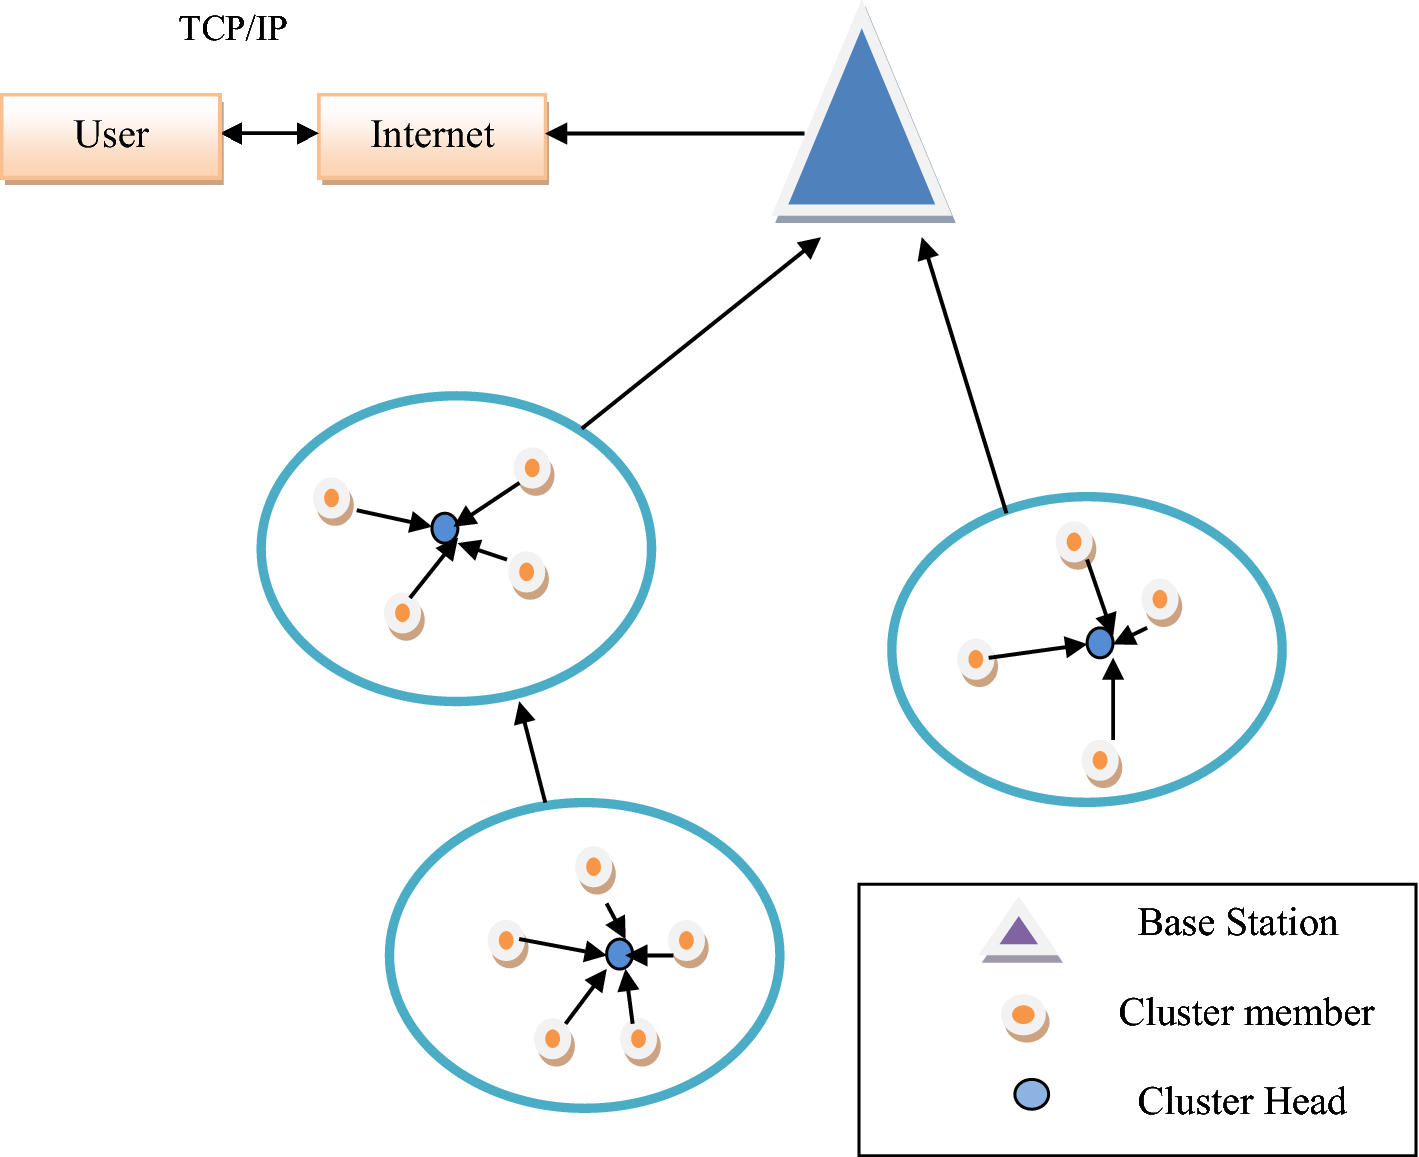 MCPCN: Multi-hop Clustering Protocol Using Cache Nodes in